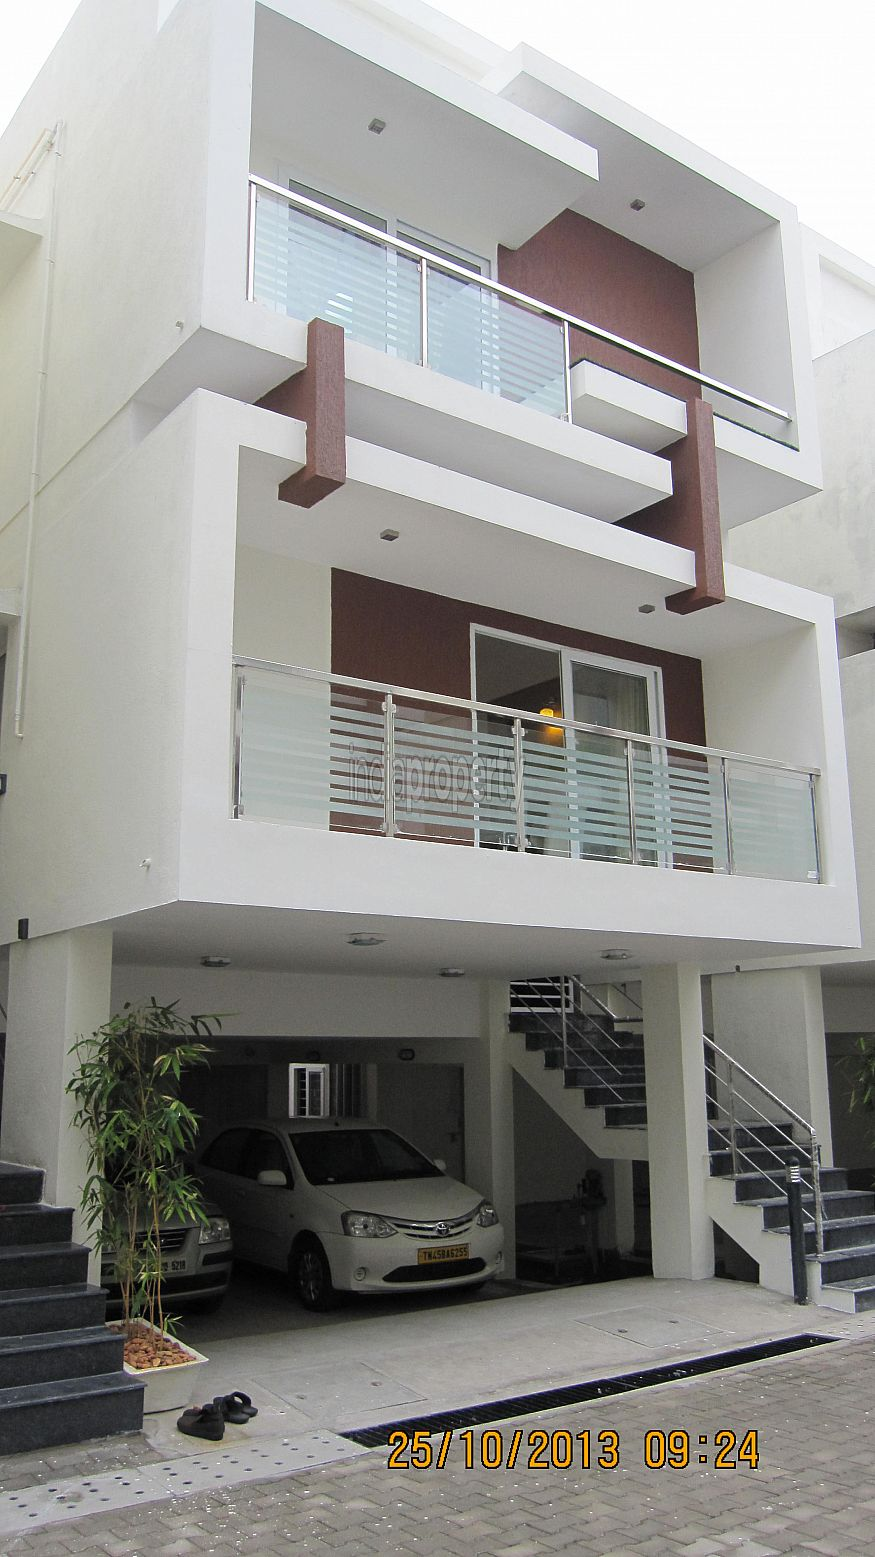 5 lakhs to 15 lakhs house for sale in chennai for Individual house models in chennai